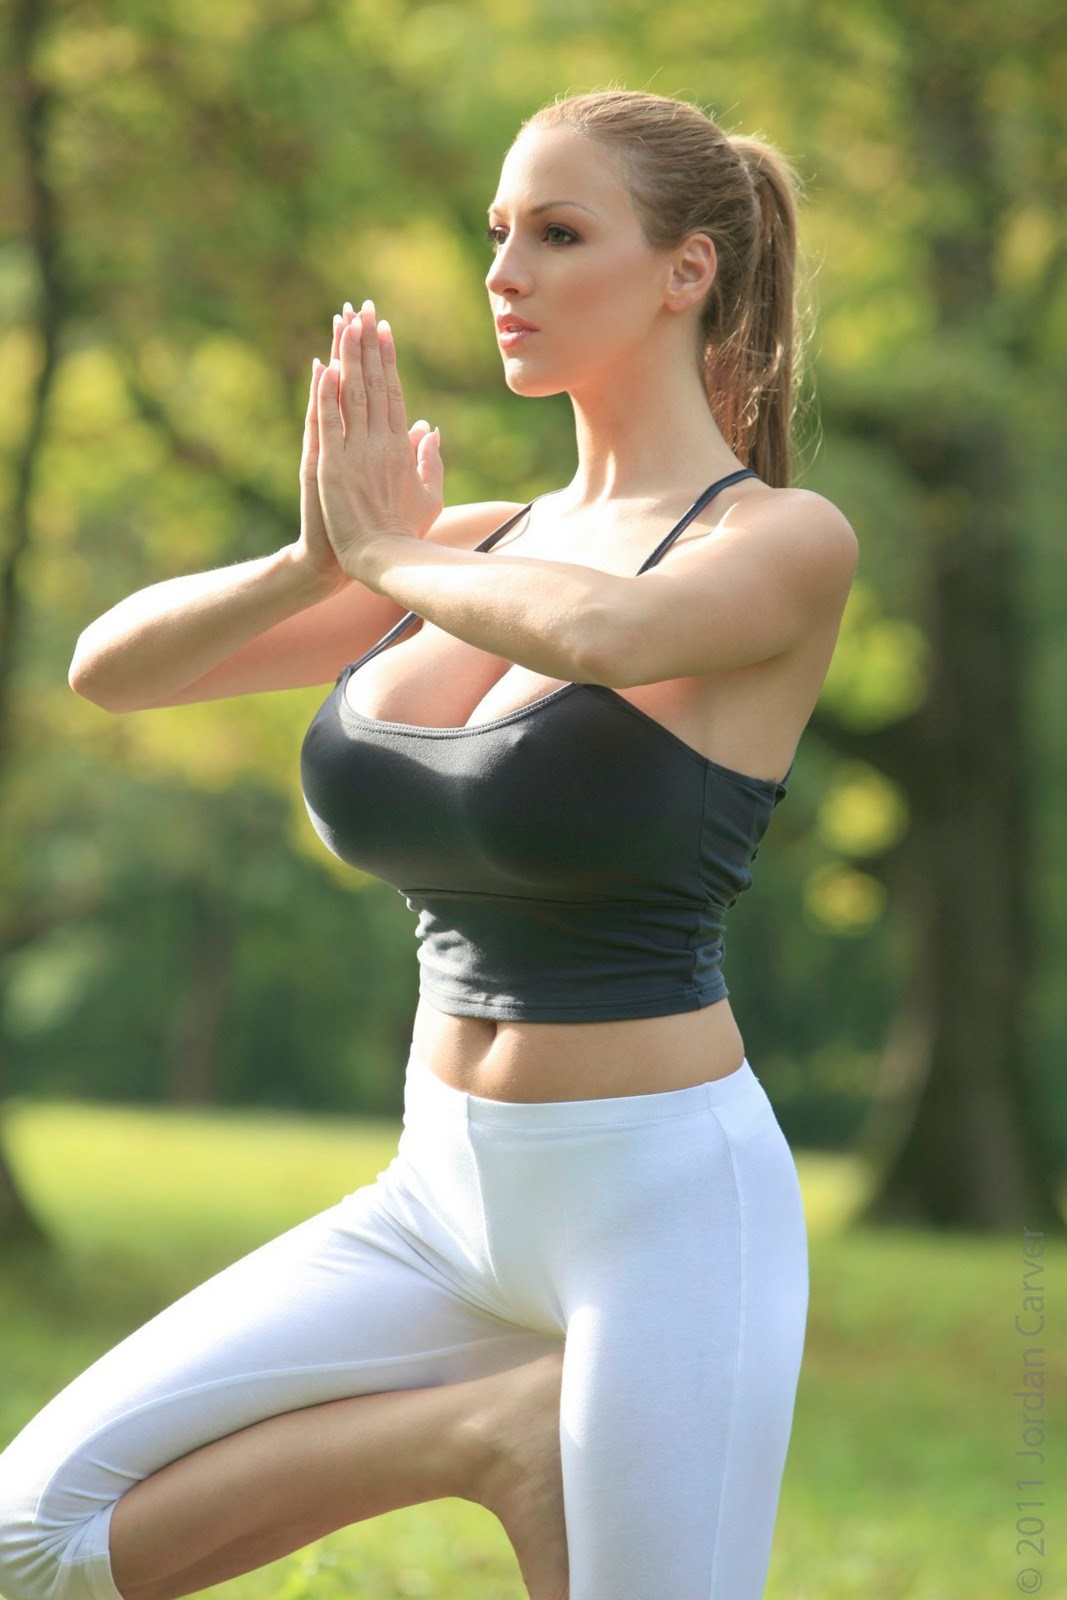 Ohio State Schedule 2018 2019 >> Jordan-Carver-Yoga-Girl-13.jpg